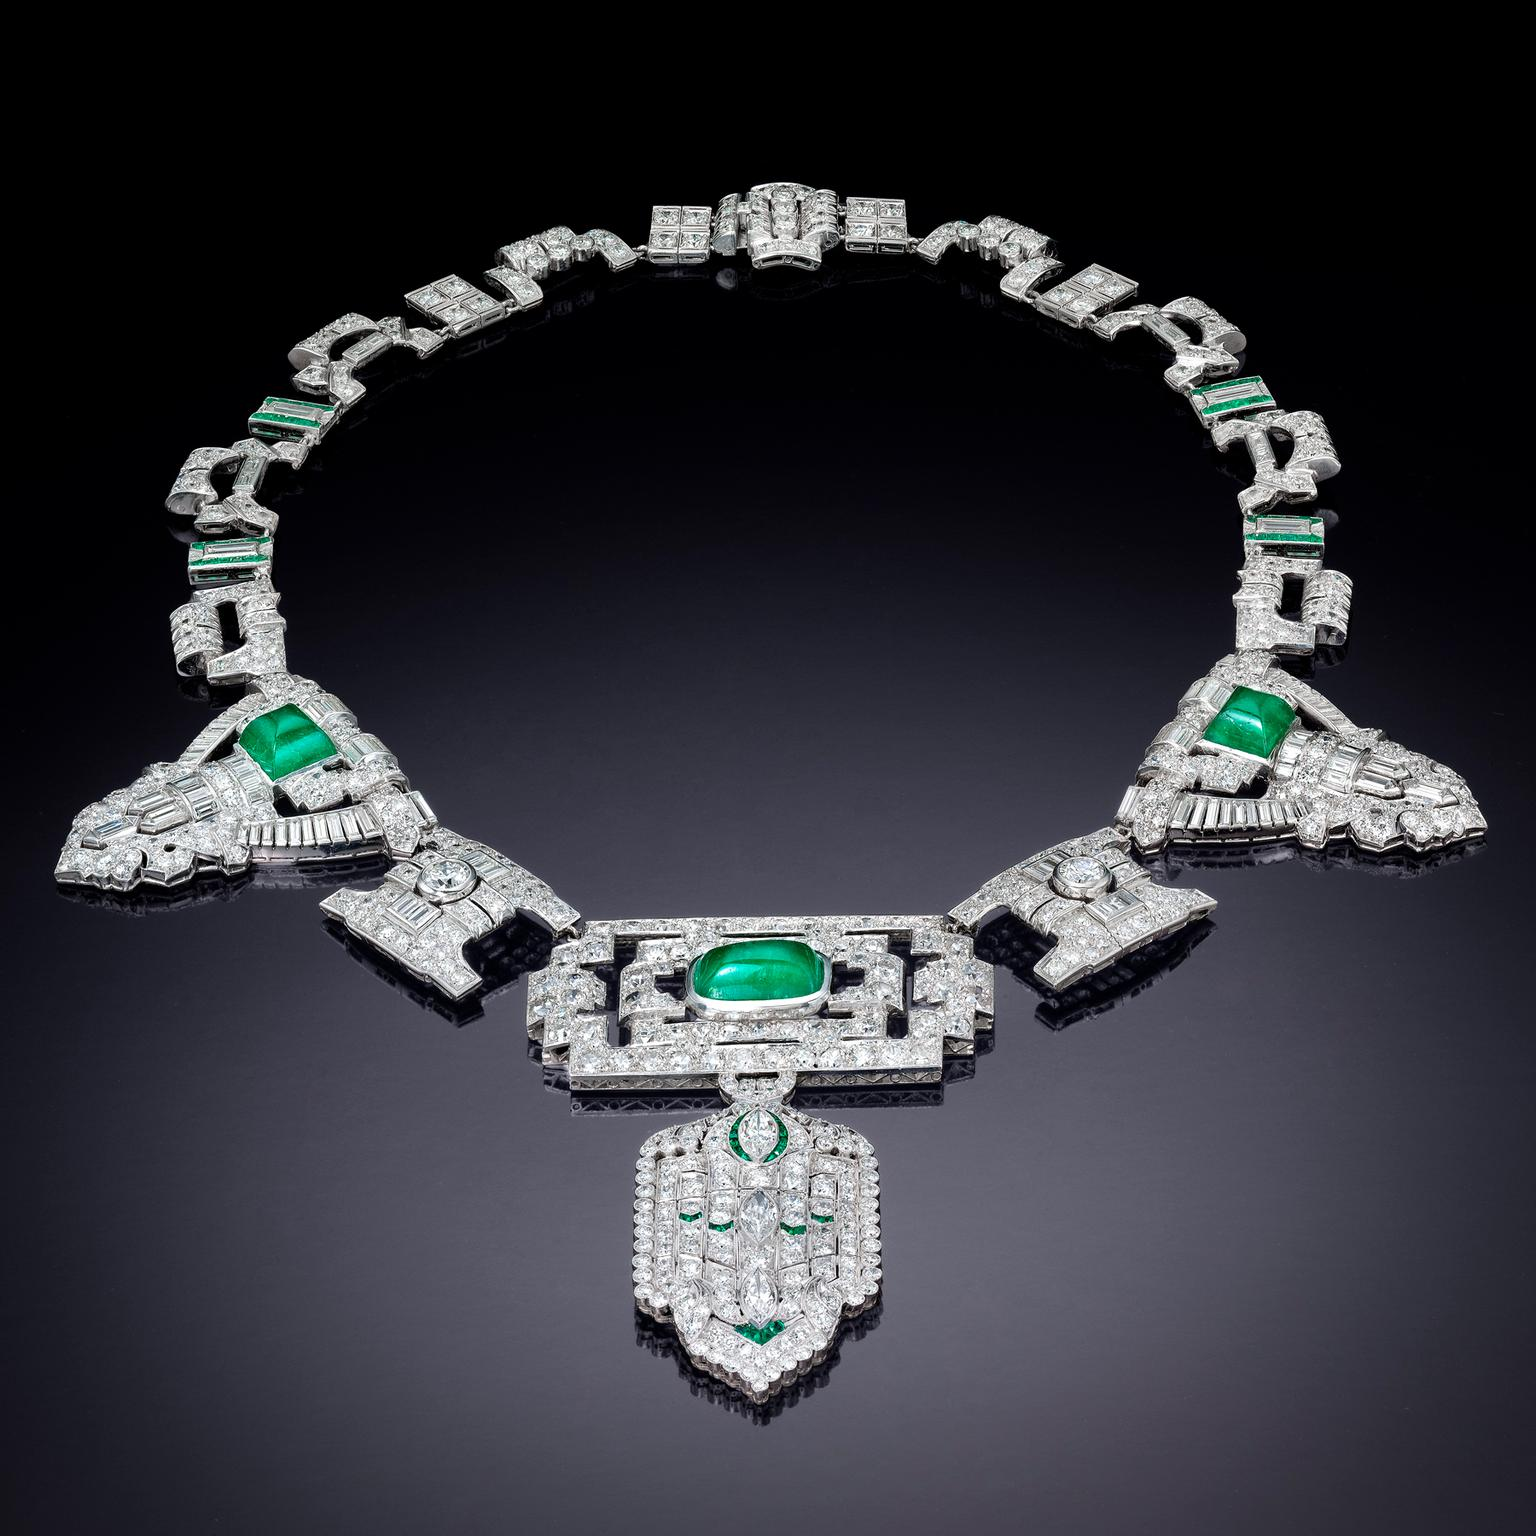 Jackie Collins' emerald, diamond and platinum necklace